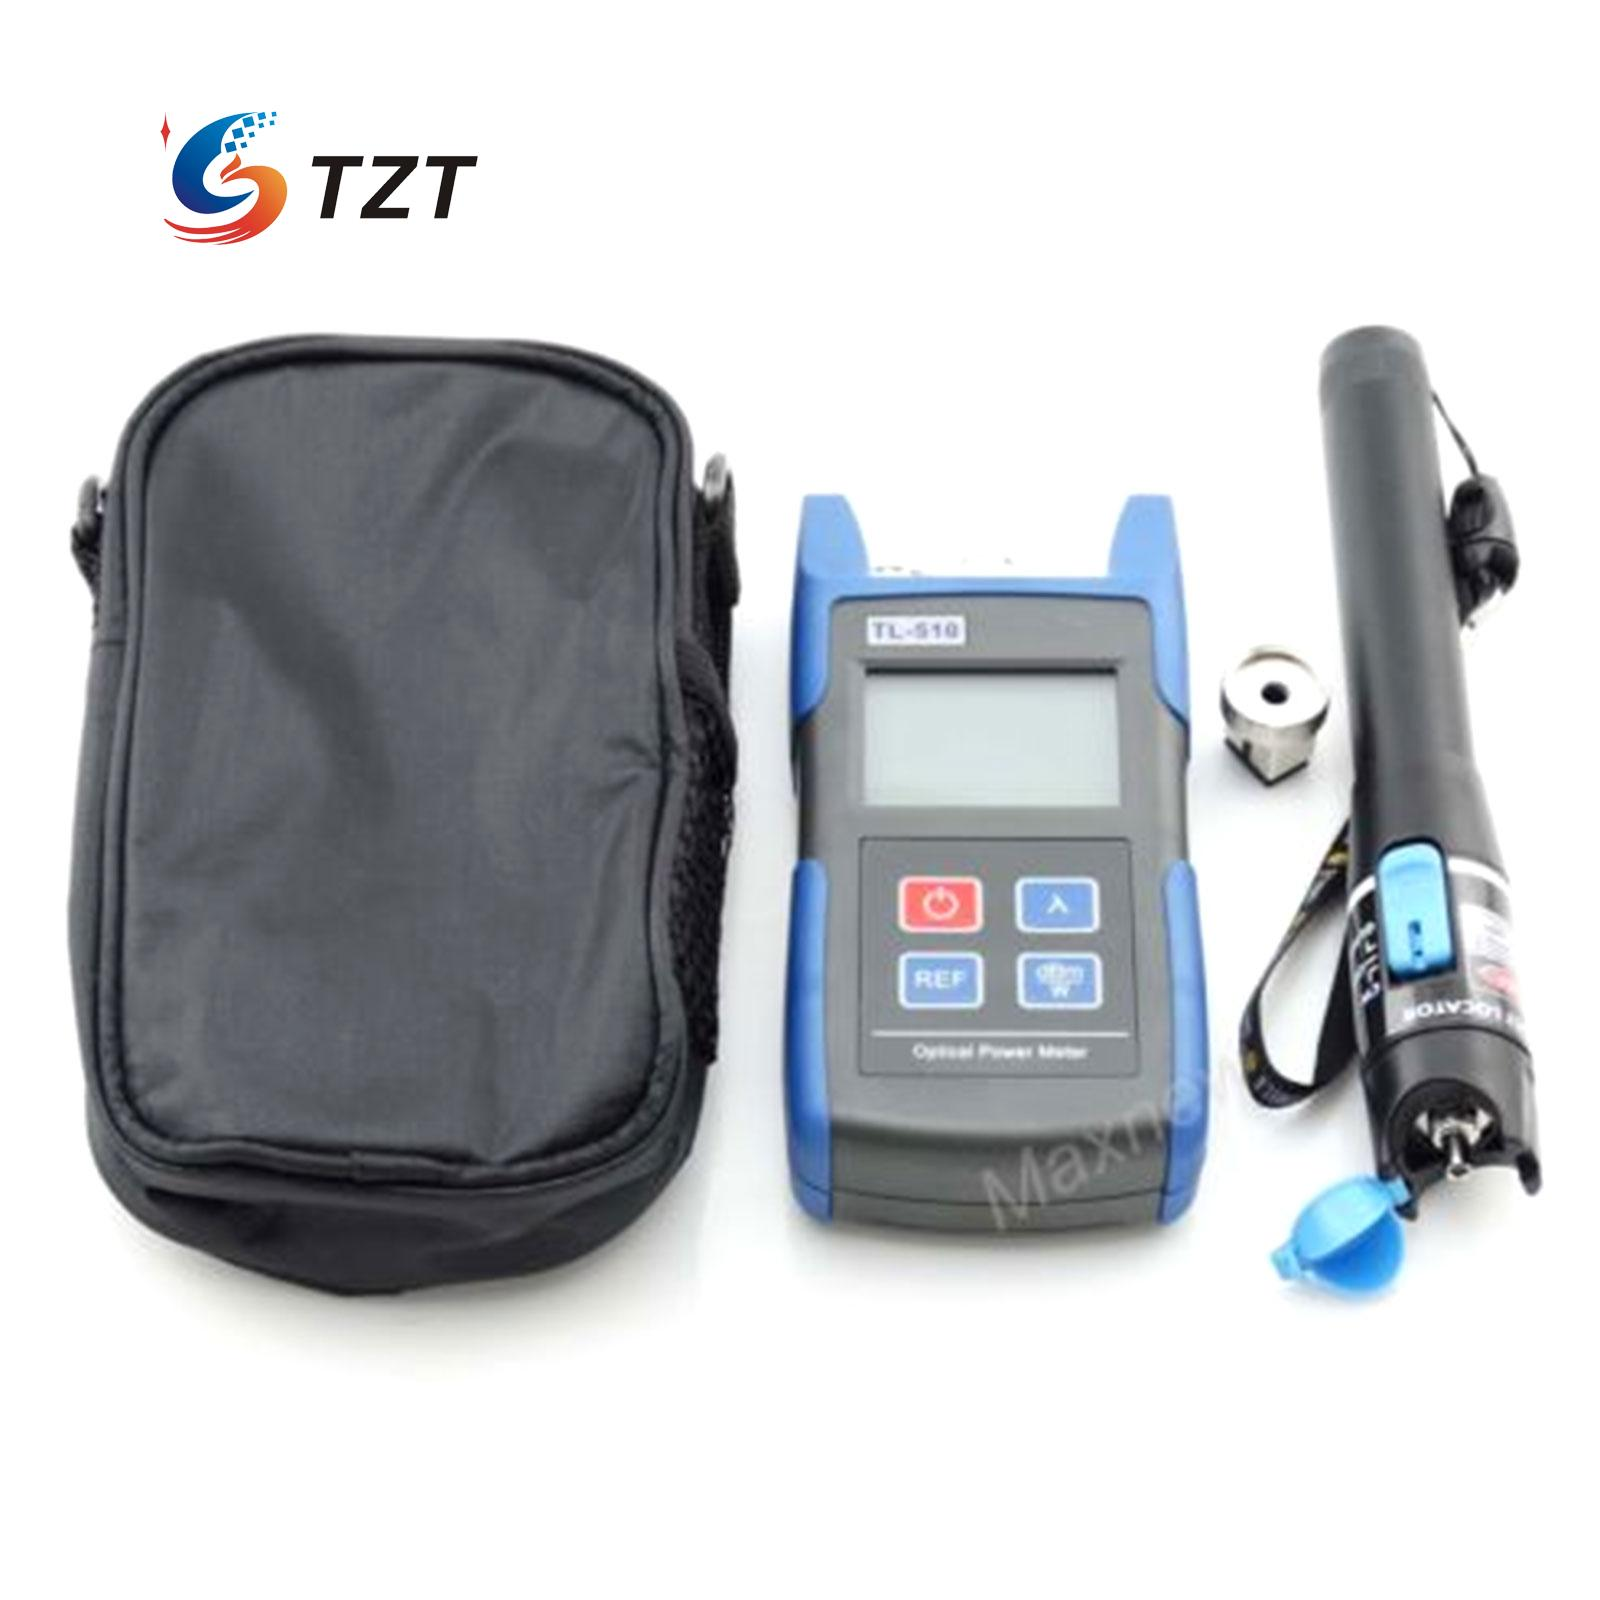 TL510 Optical Power Meter with FC SC Connector +TL532 Fiber Cable Locator Tester 10km jiahui fc sc flange connector optical adapter couplers black silver 2 pcs